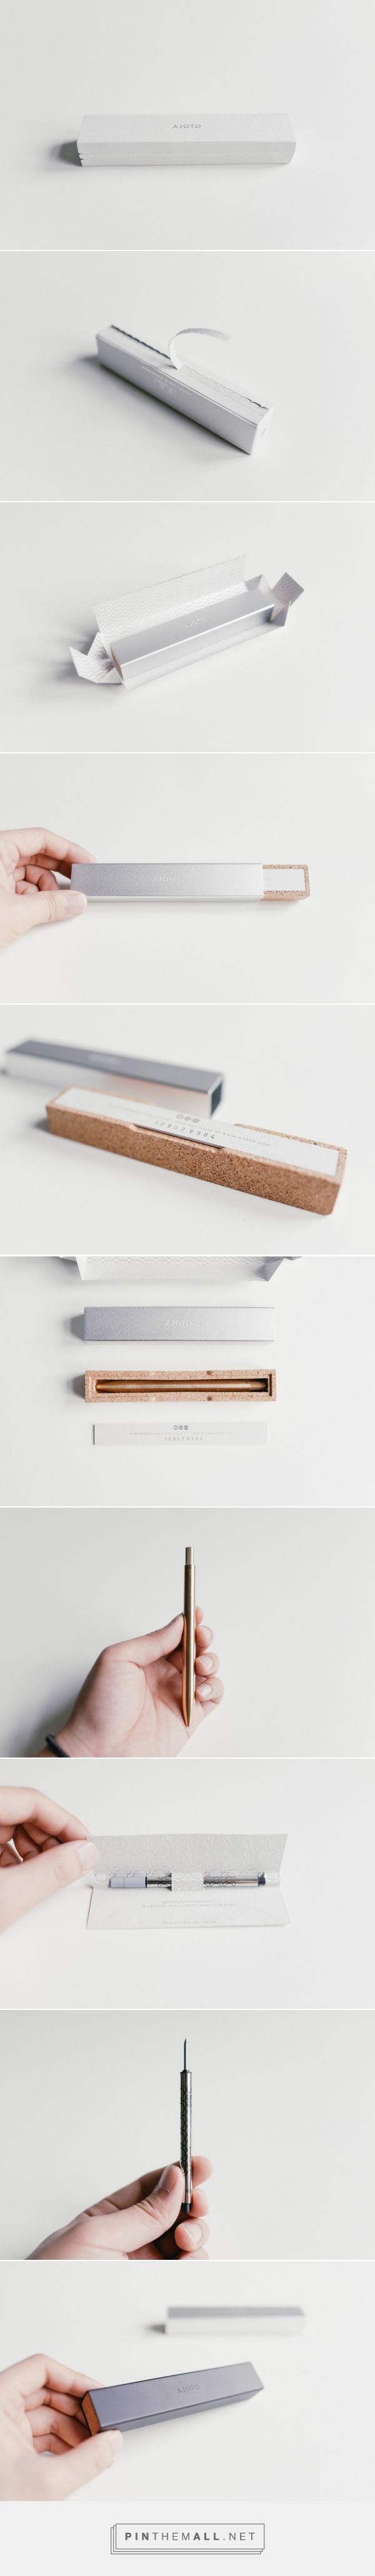 Ajoto — Minimally Minimal #packaging #product #design